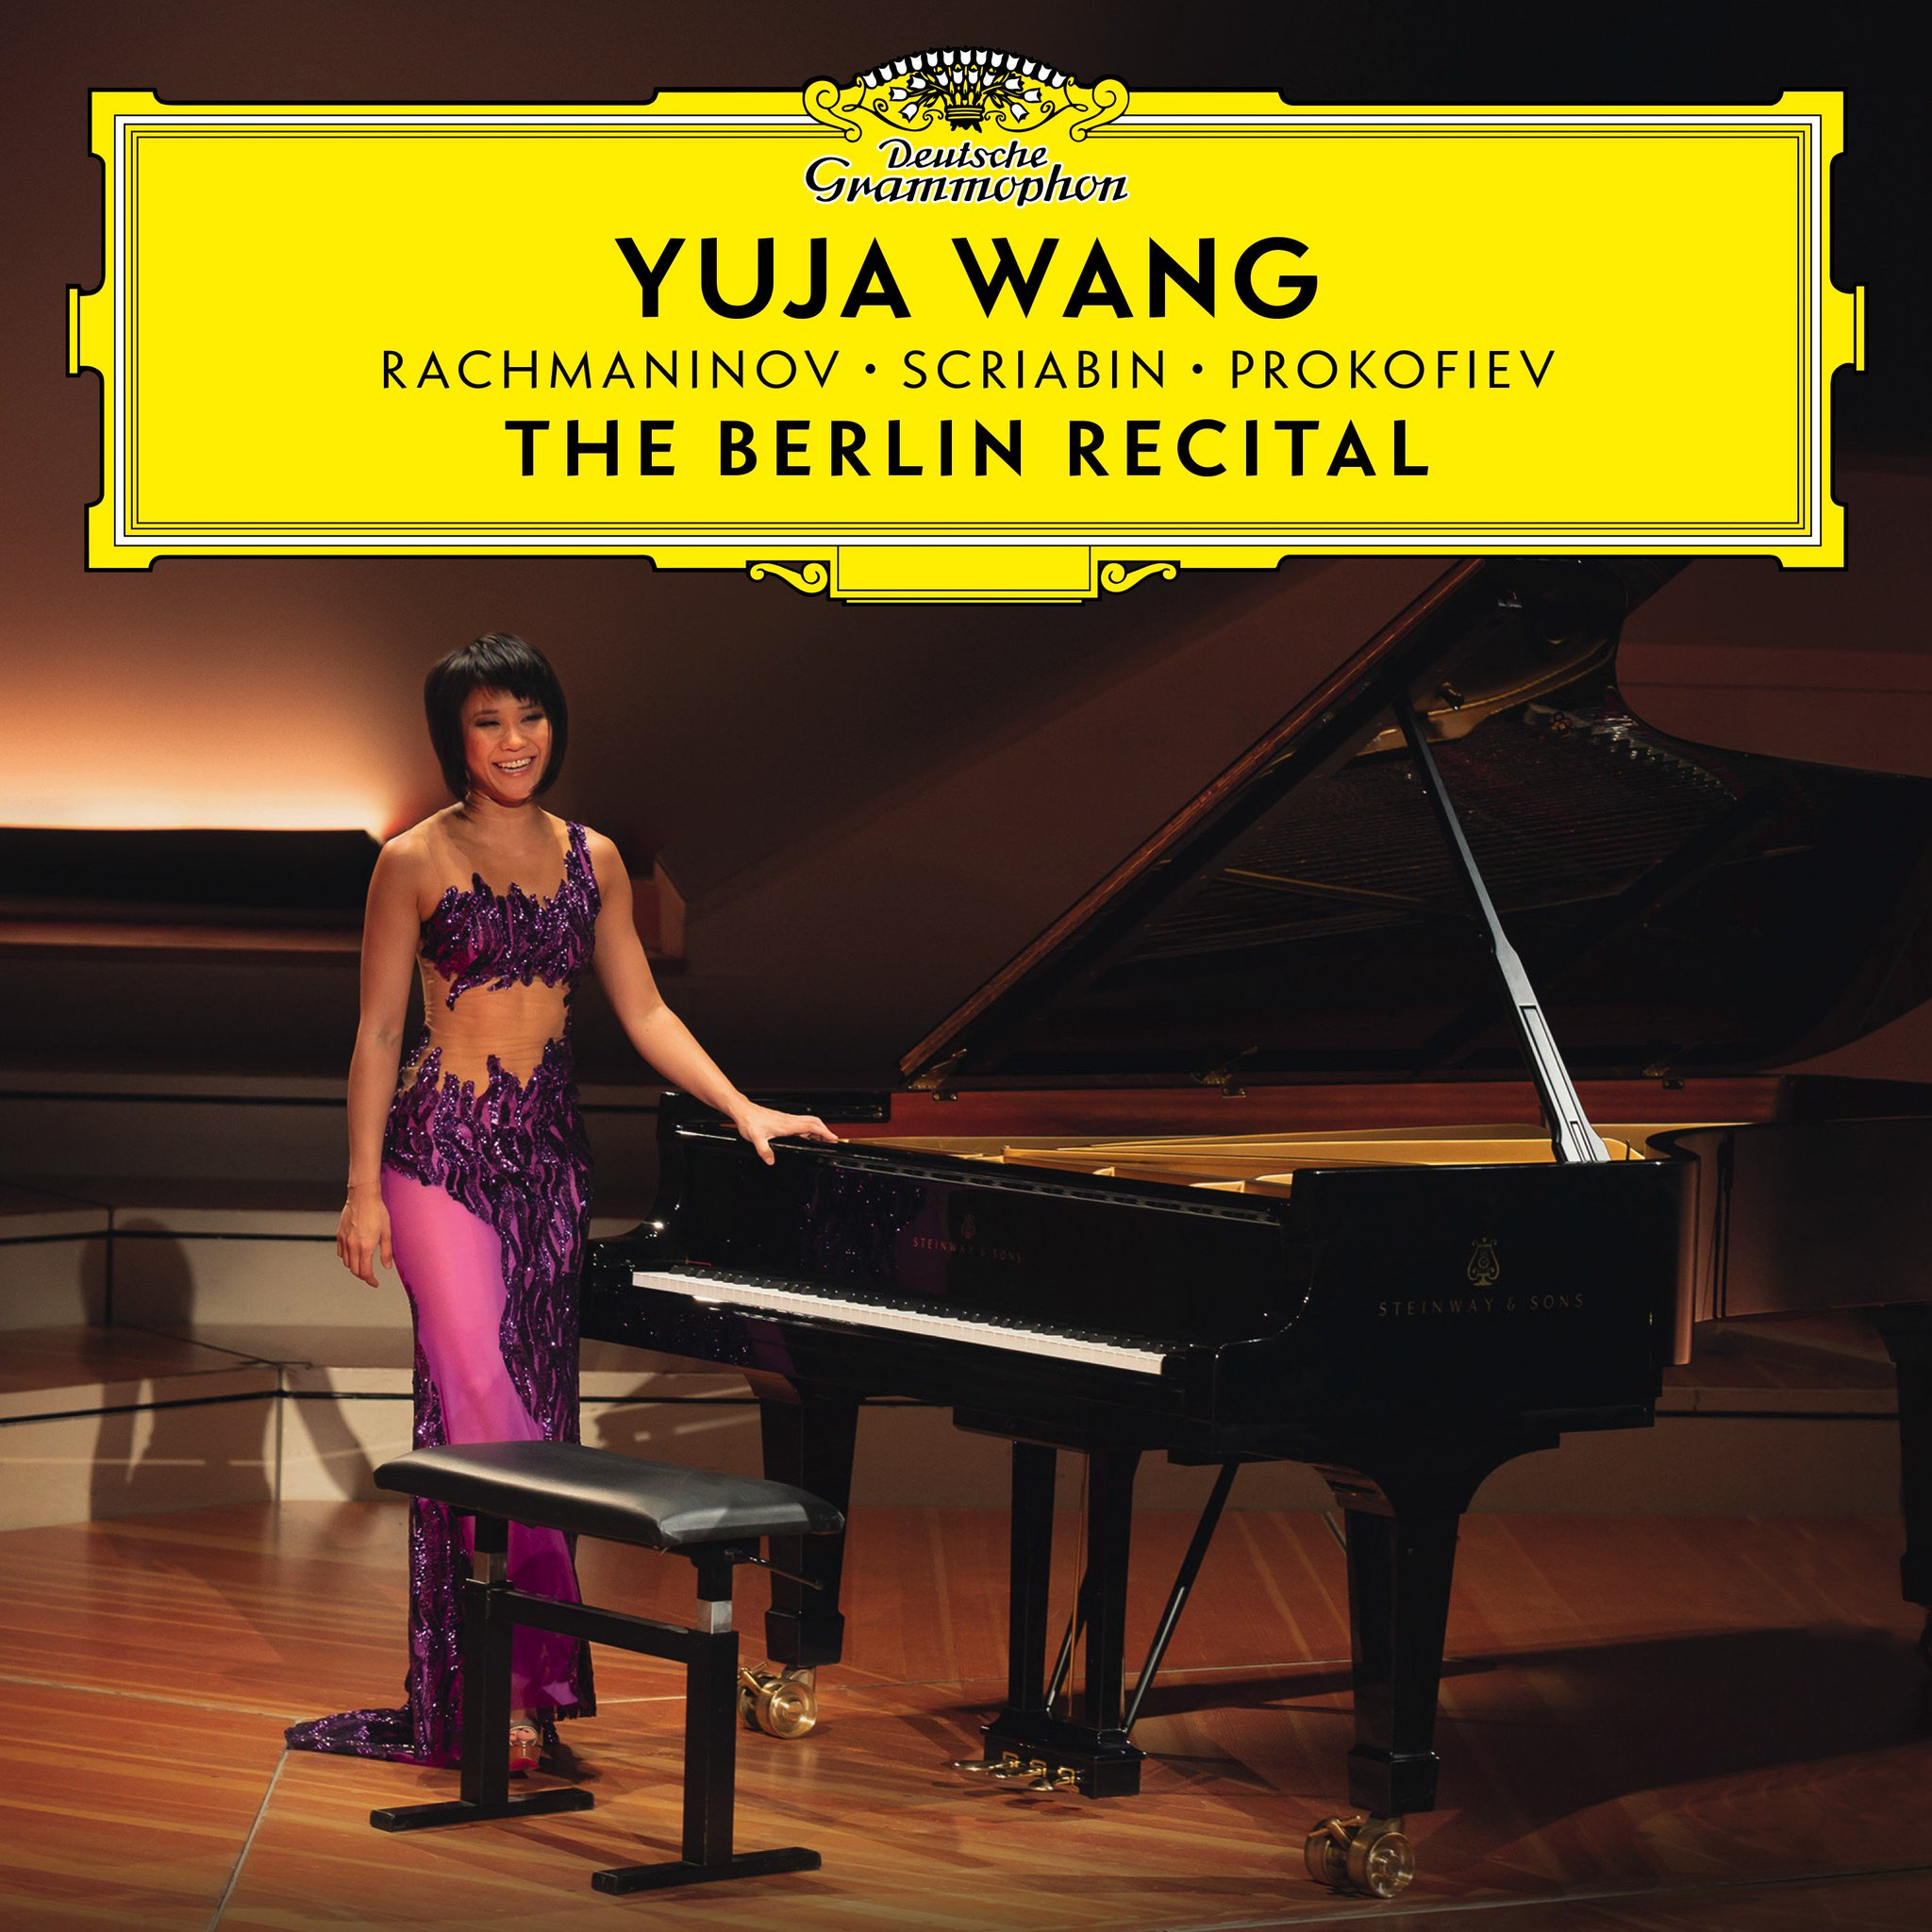 Reloaded twaddle – RT @DGclassics: For her new album, @YujaWang chose three of Ligeti's Études to s...